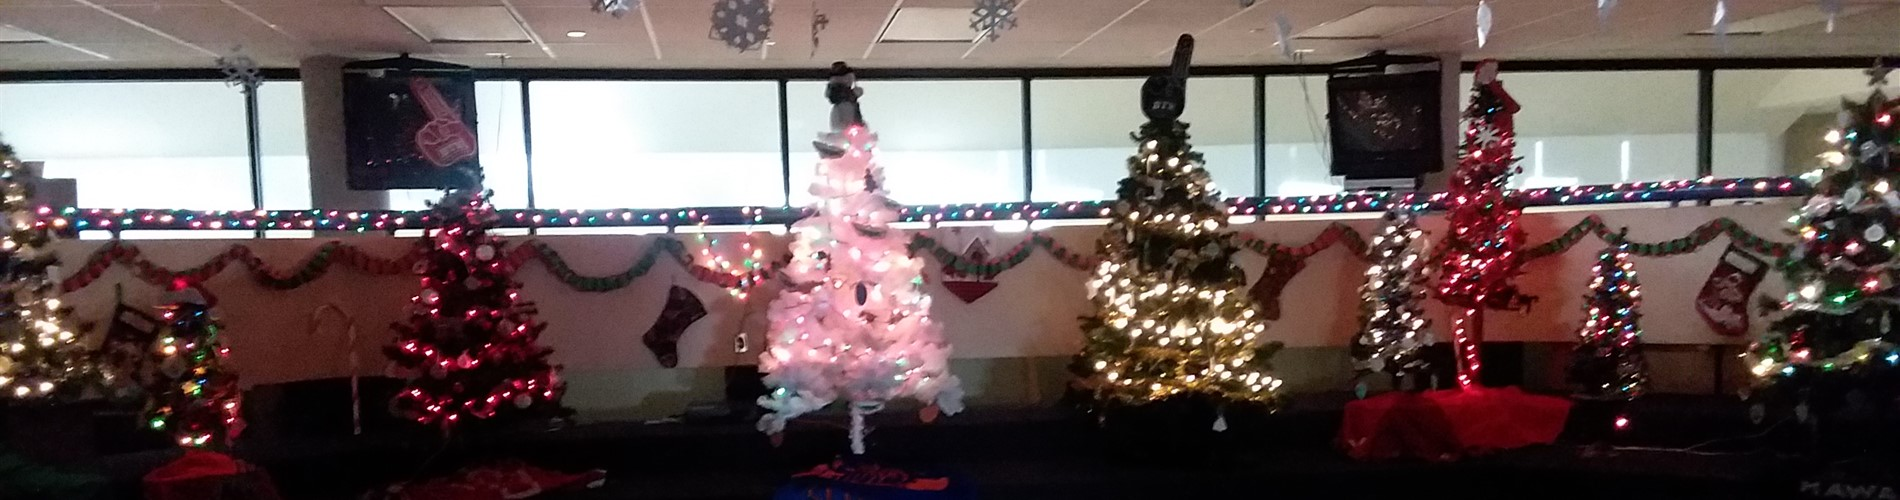 Decorated Christmas trees at WNE